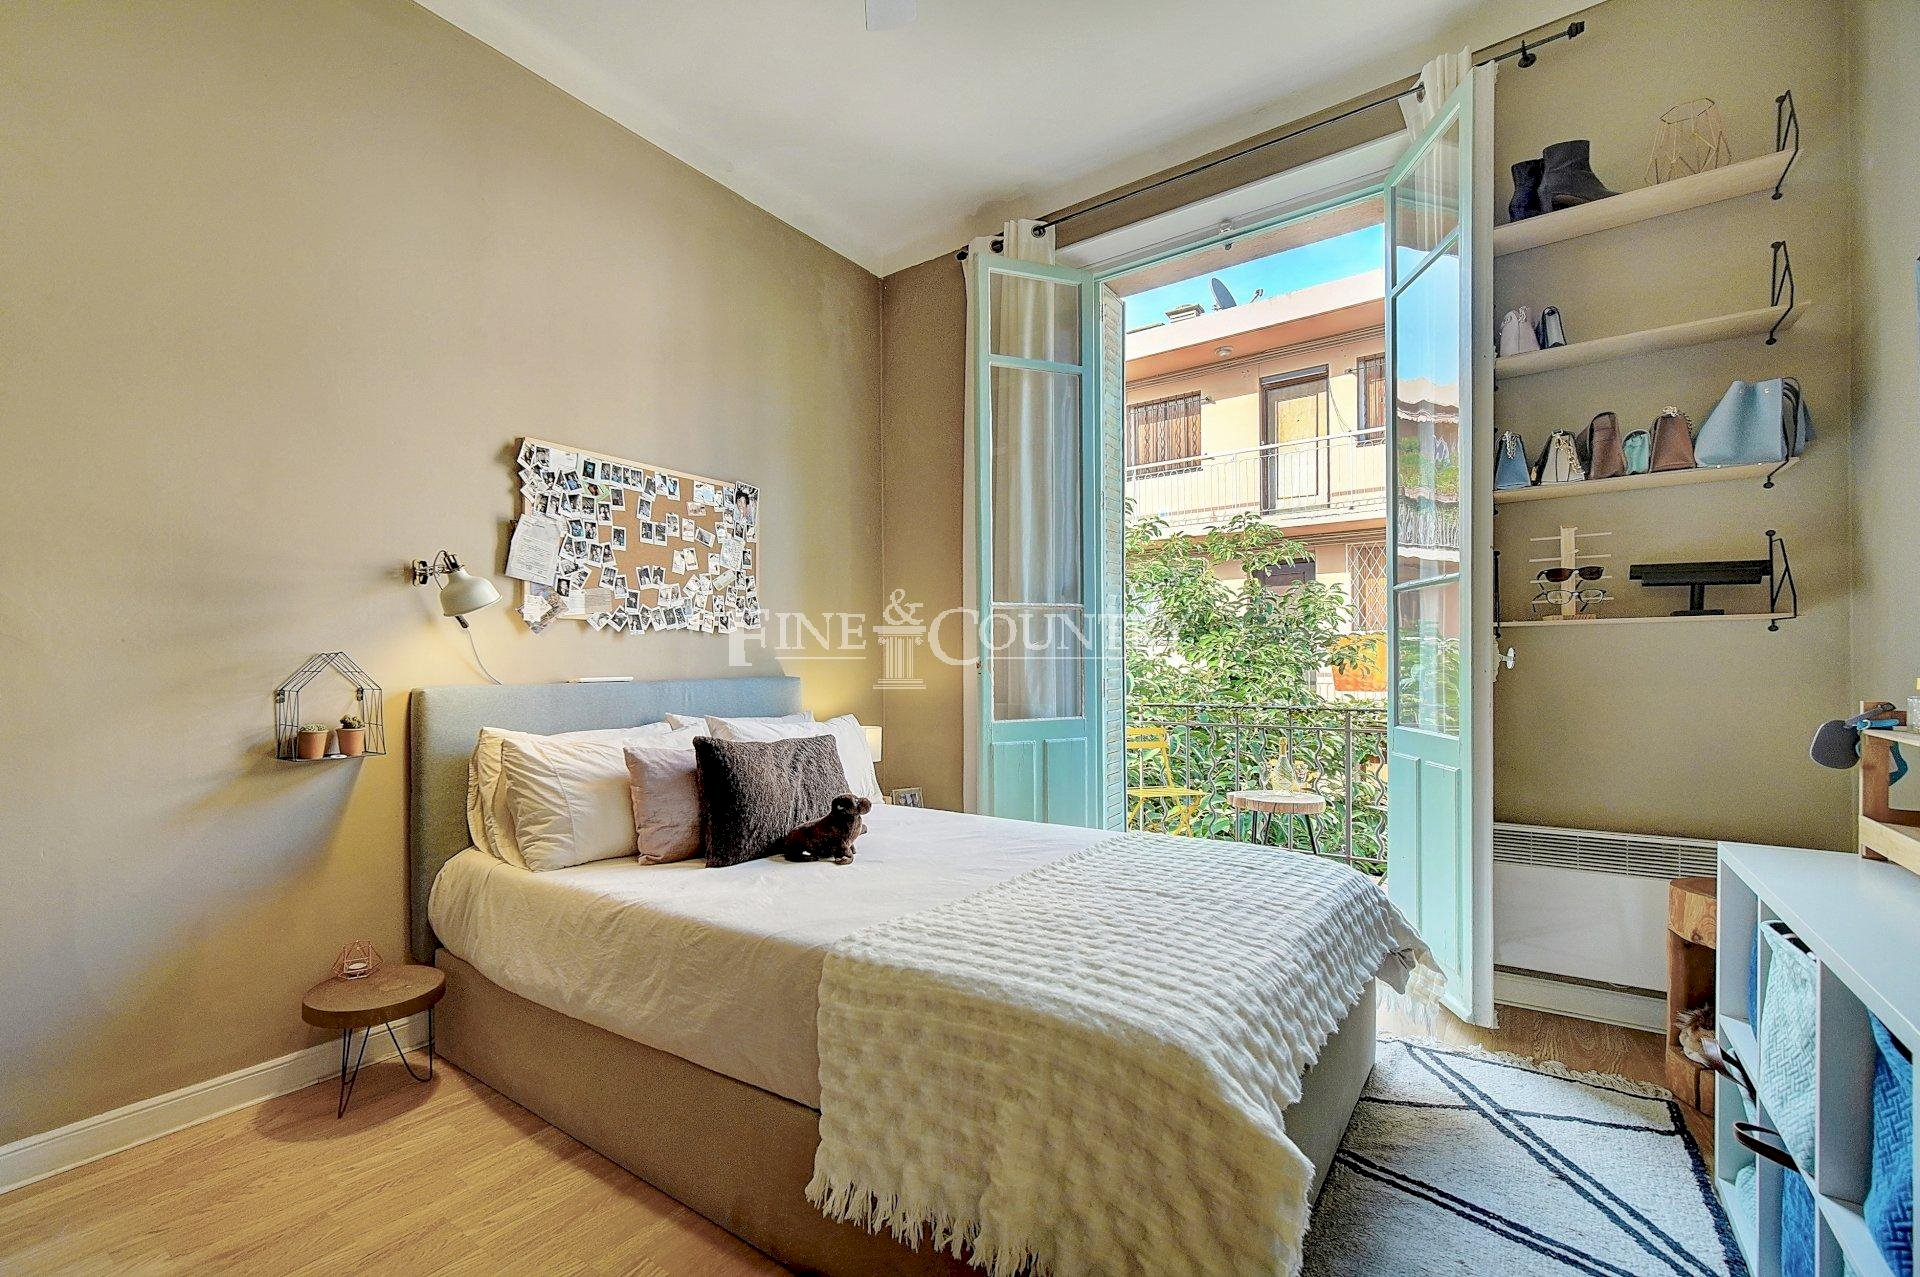 Apartment For Sale in Golfe Juan